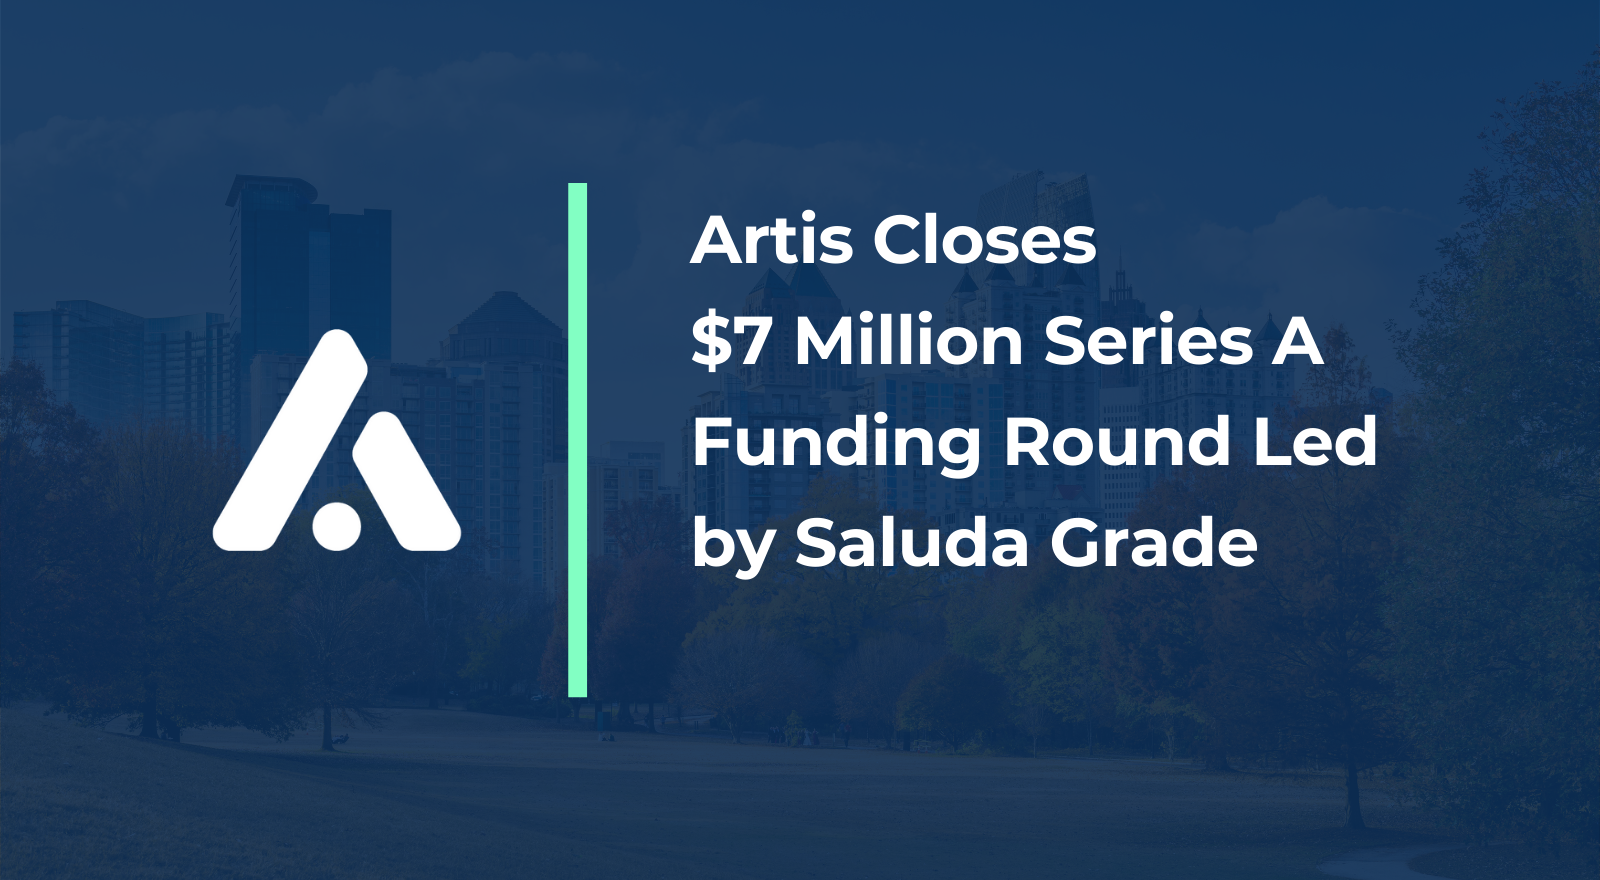 Artis Closes $7 Million Series A Funding Round Led by Saluda Grade